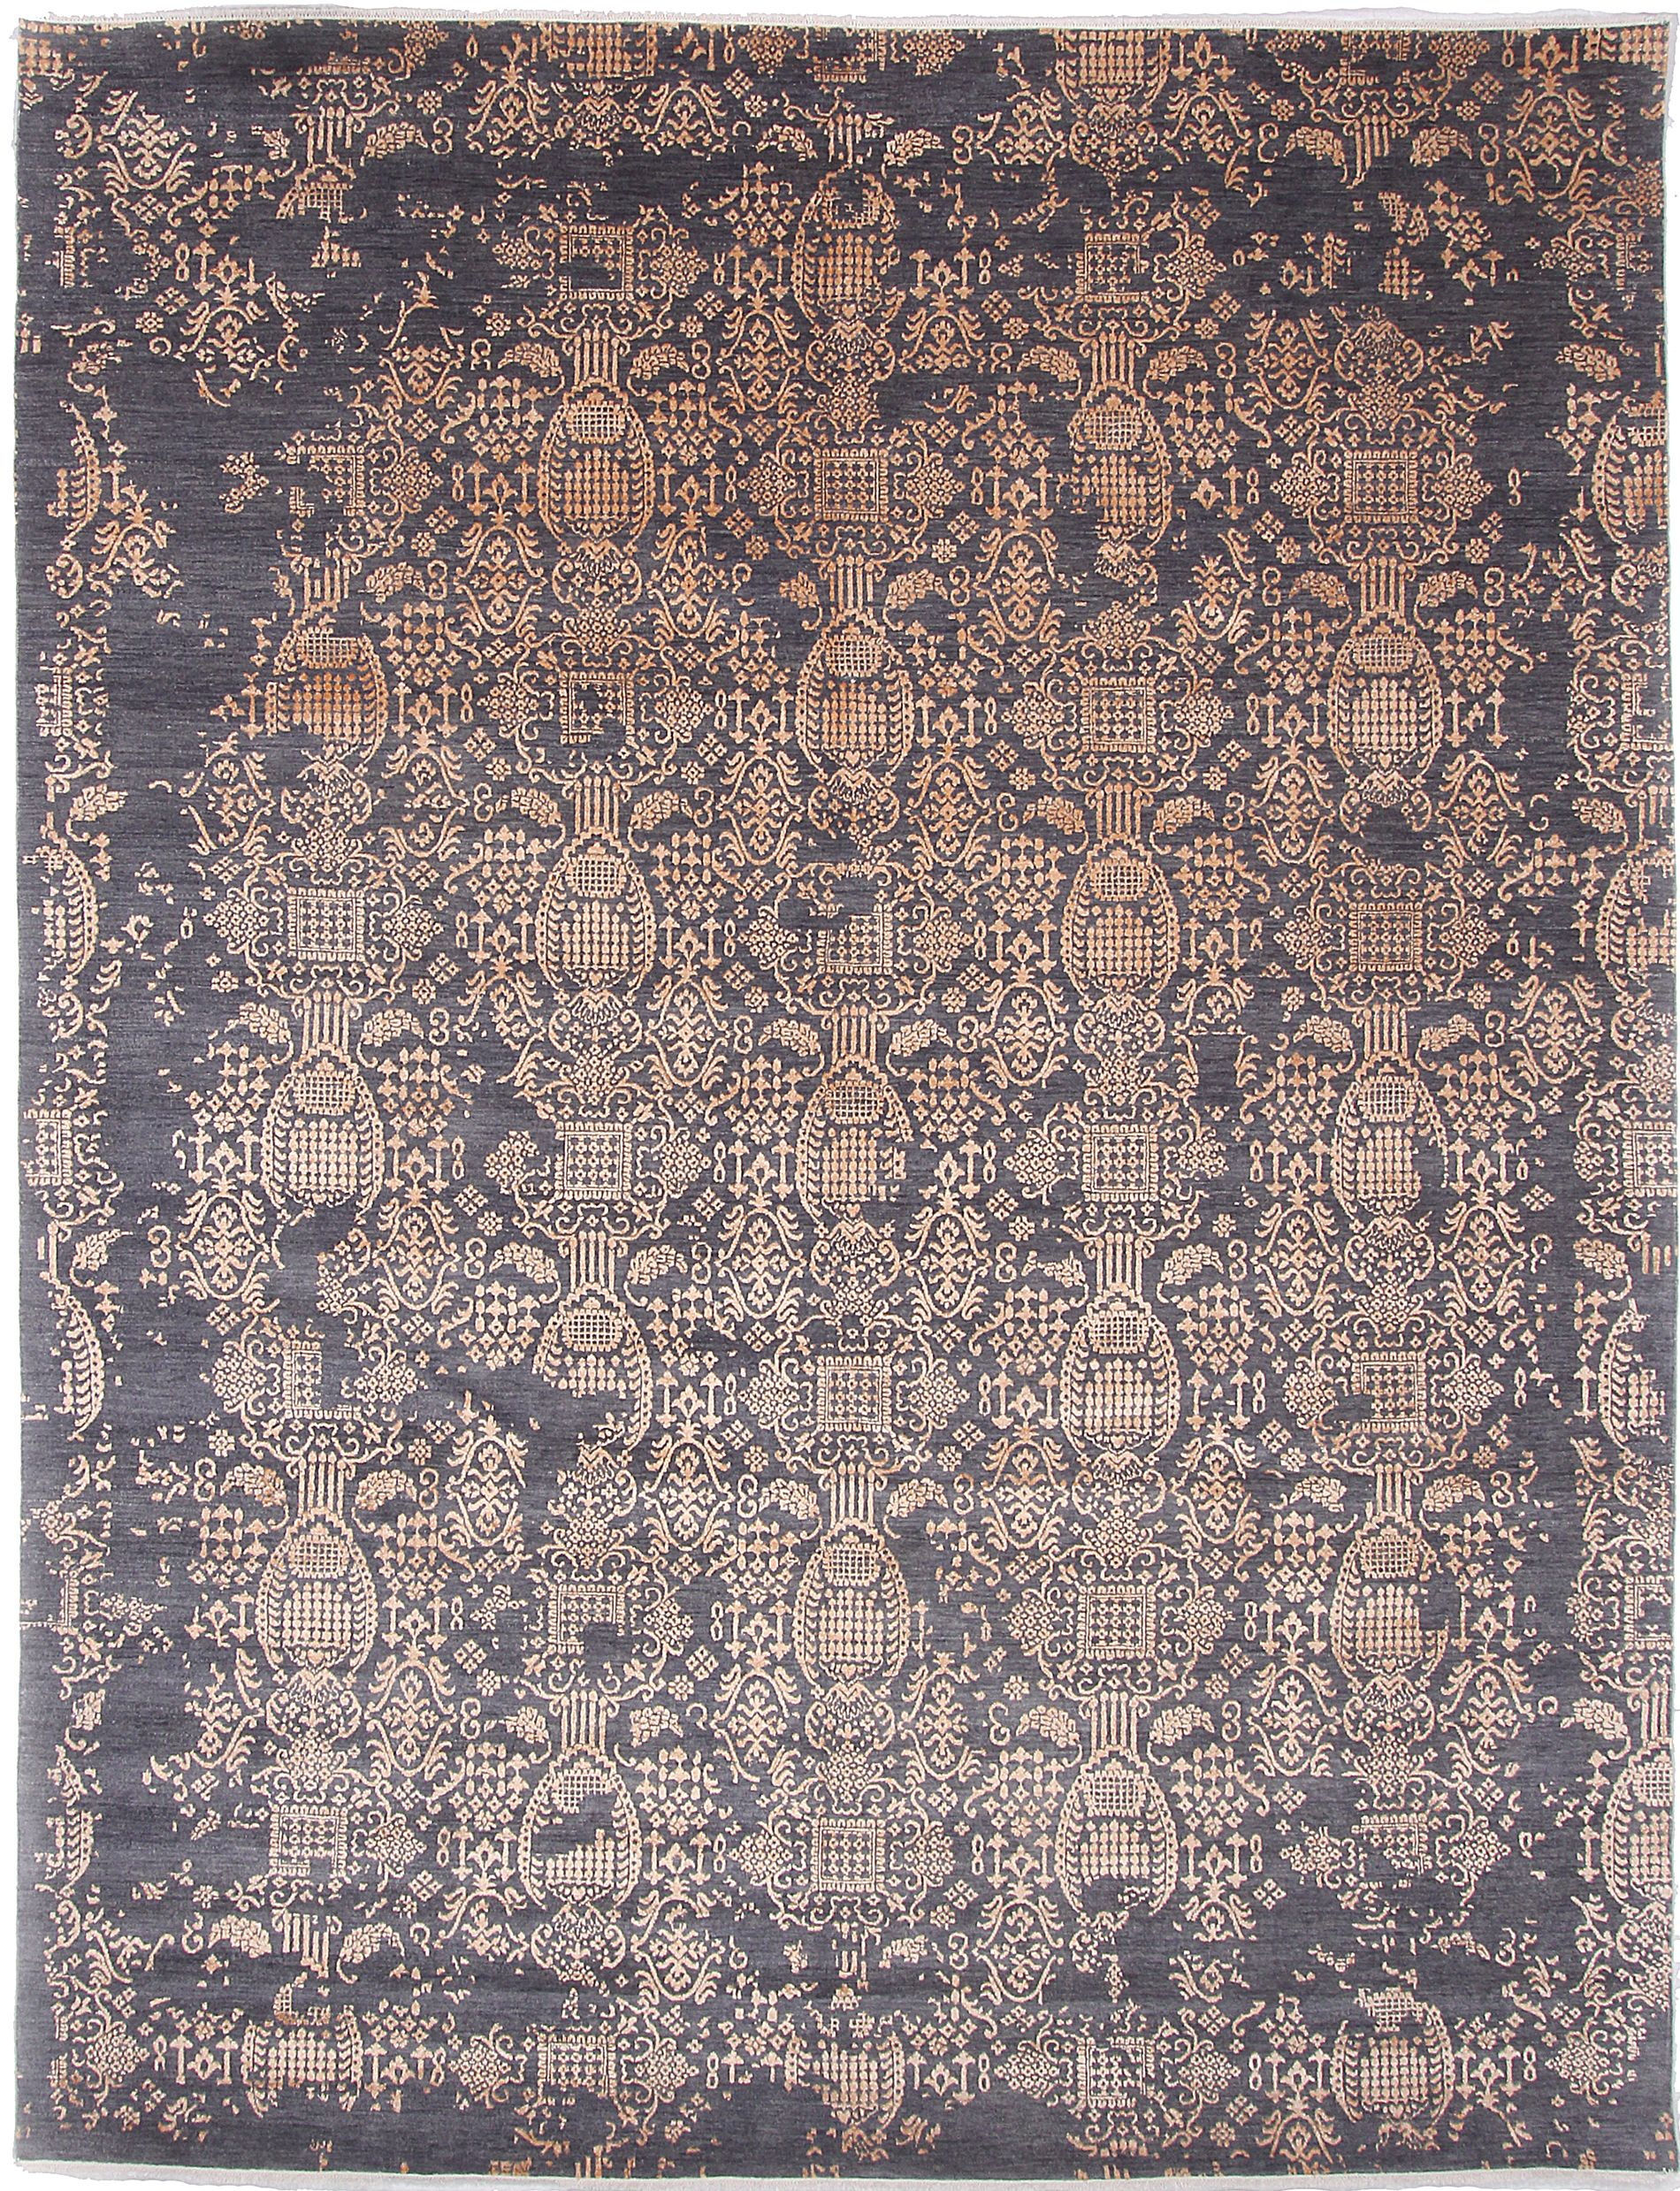 36478 Contemporary Indian Rugs Indian Rugs Contemporary Carpets Design Contemporary Carpet